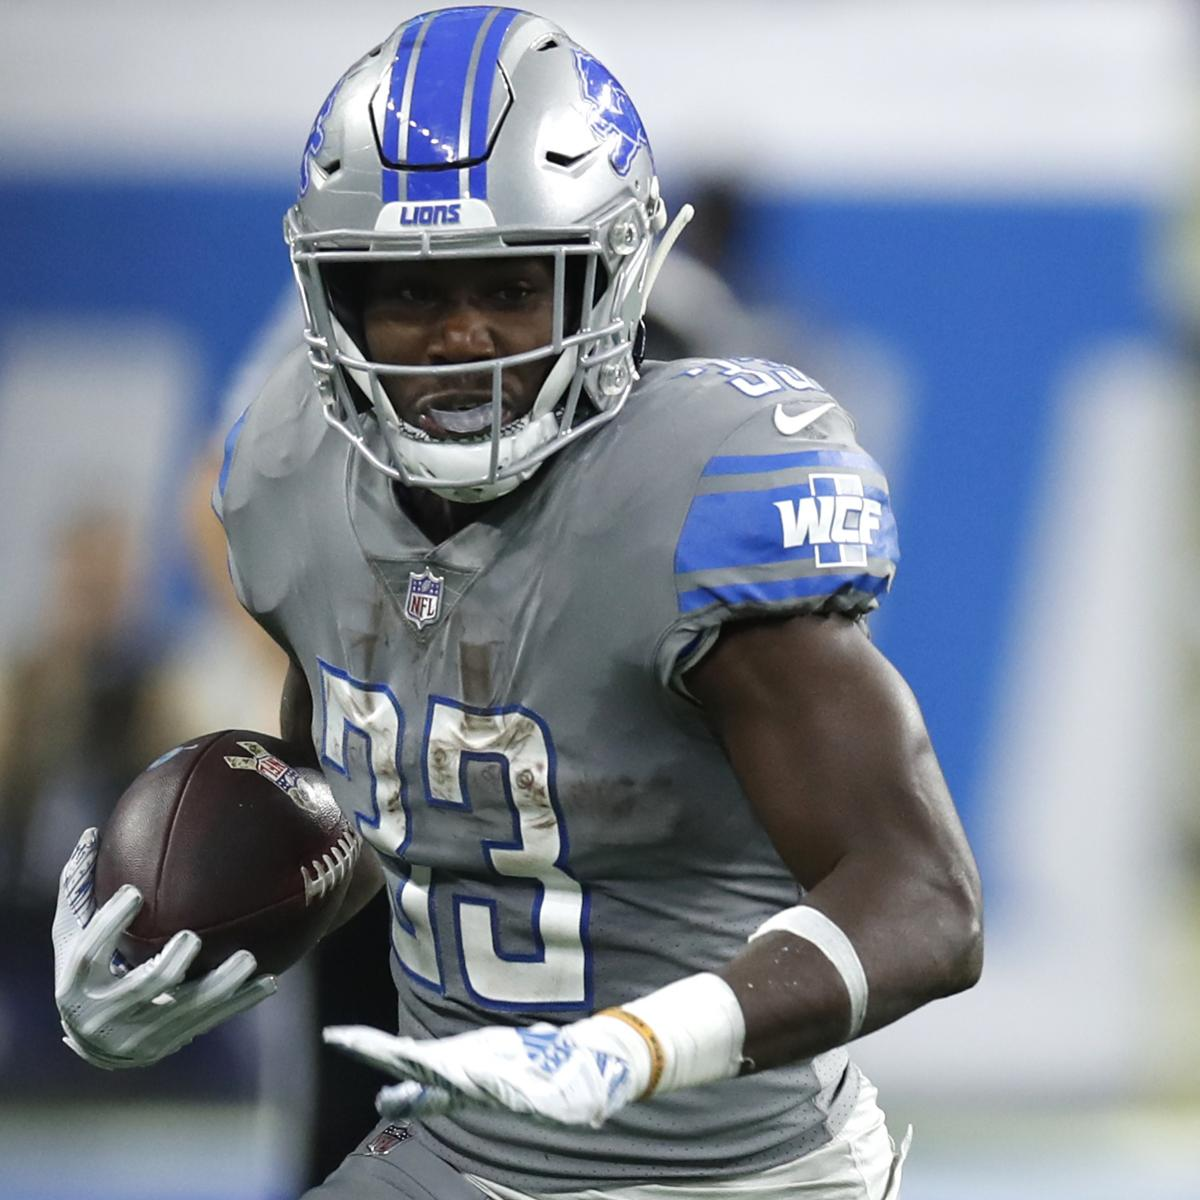 Denver Broncos Vs Detroit Lions Live Score Highlights And: Lions Reportedly Place Kerryon Johnson On Injured Reserve